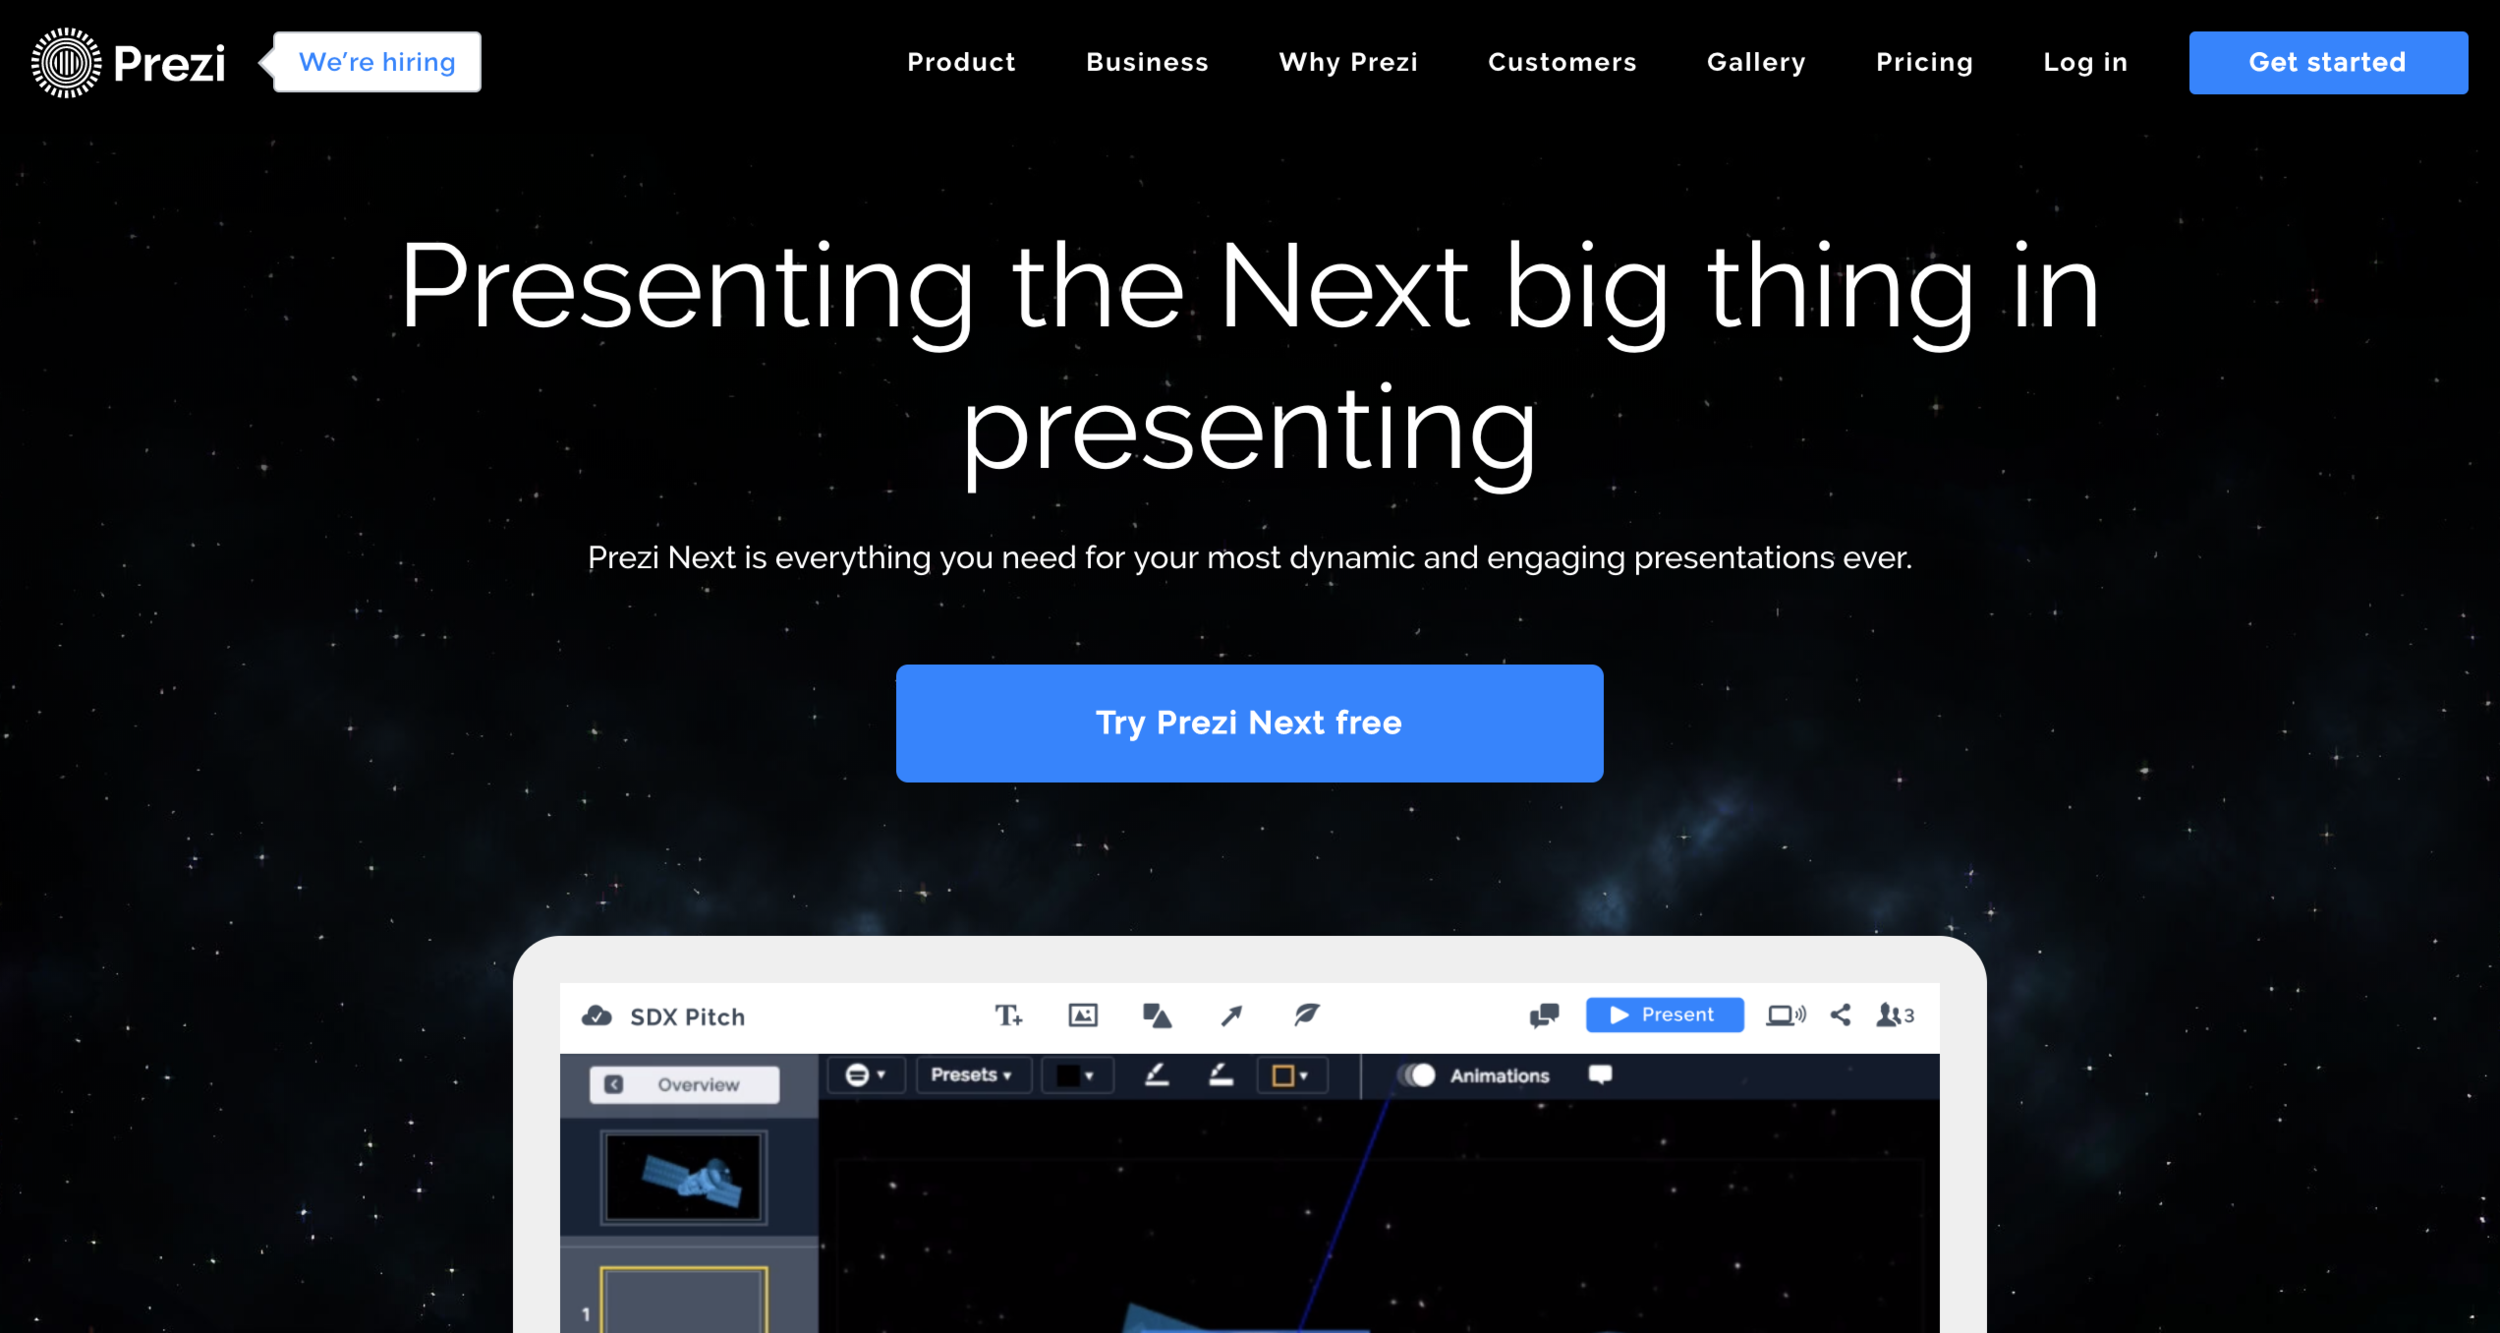 Prezi - I am enthralled by the storytelling potential that exists in the way Prezi transitions. I have spent countless hours retooling transitions in Prezi to capture the smoothest swoop and zaniest zoom. Personally, my loyalty remains with Google Slides, but I have thoroughly enjoyed spending far too long preparing Prezis.